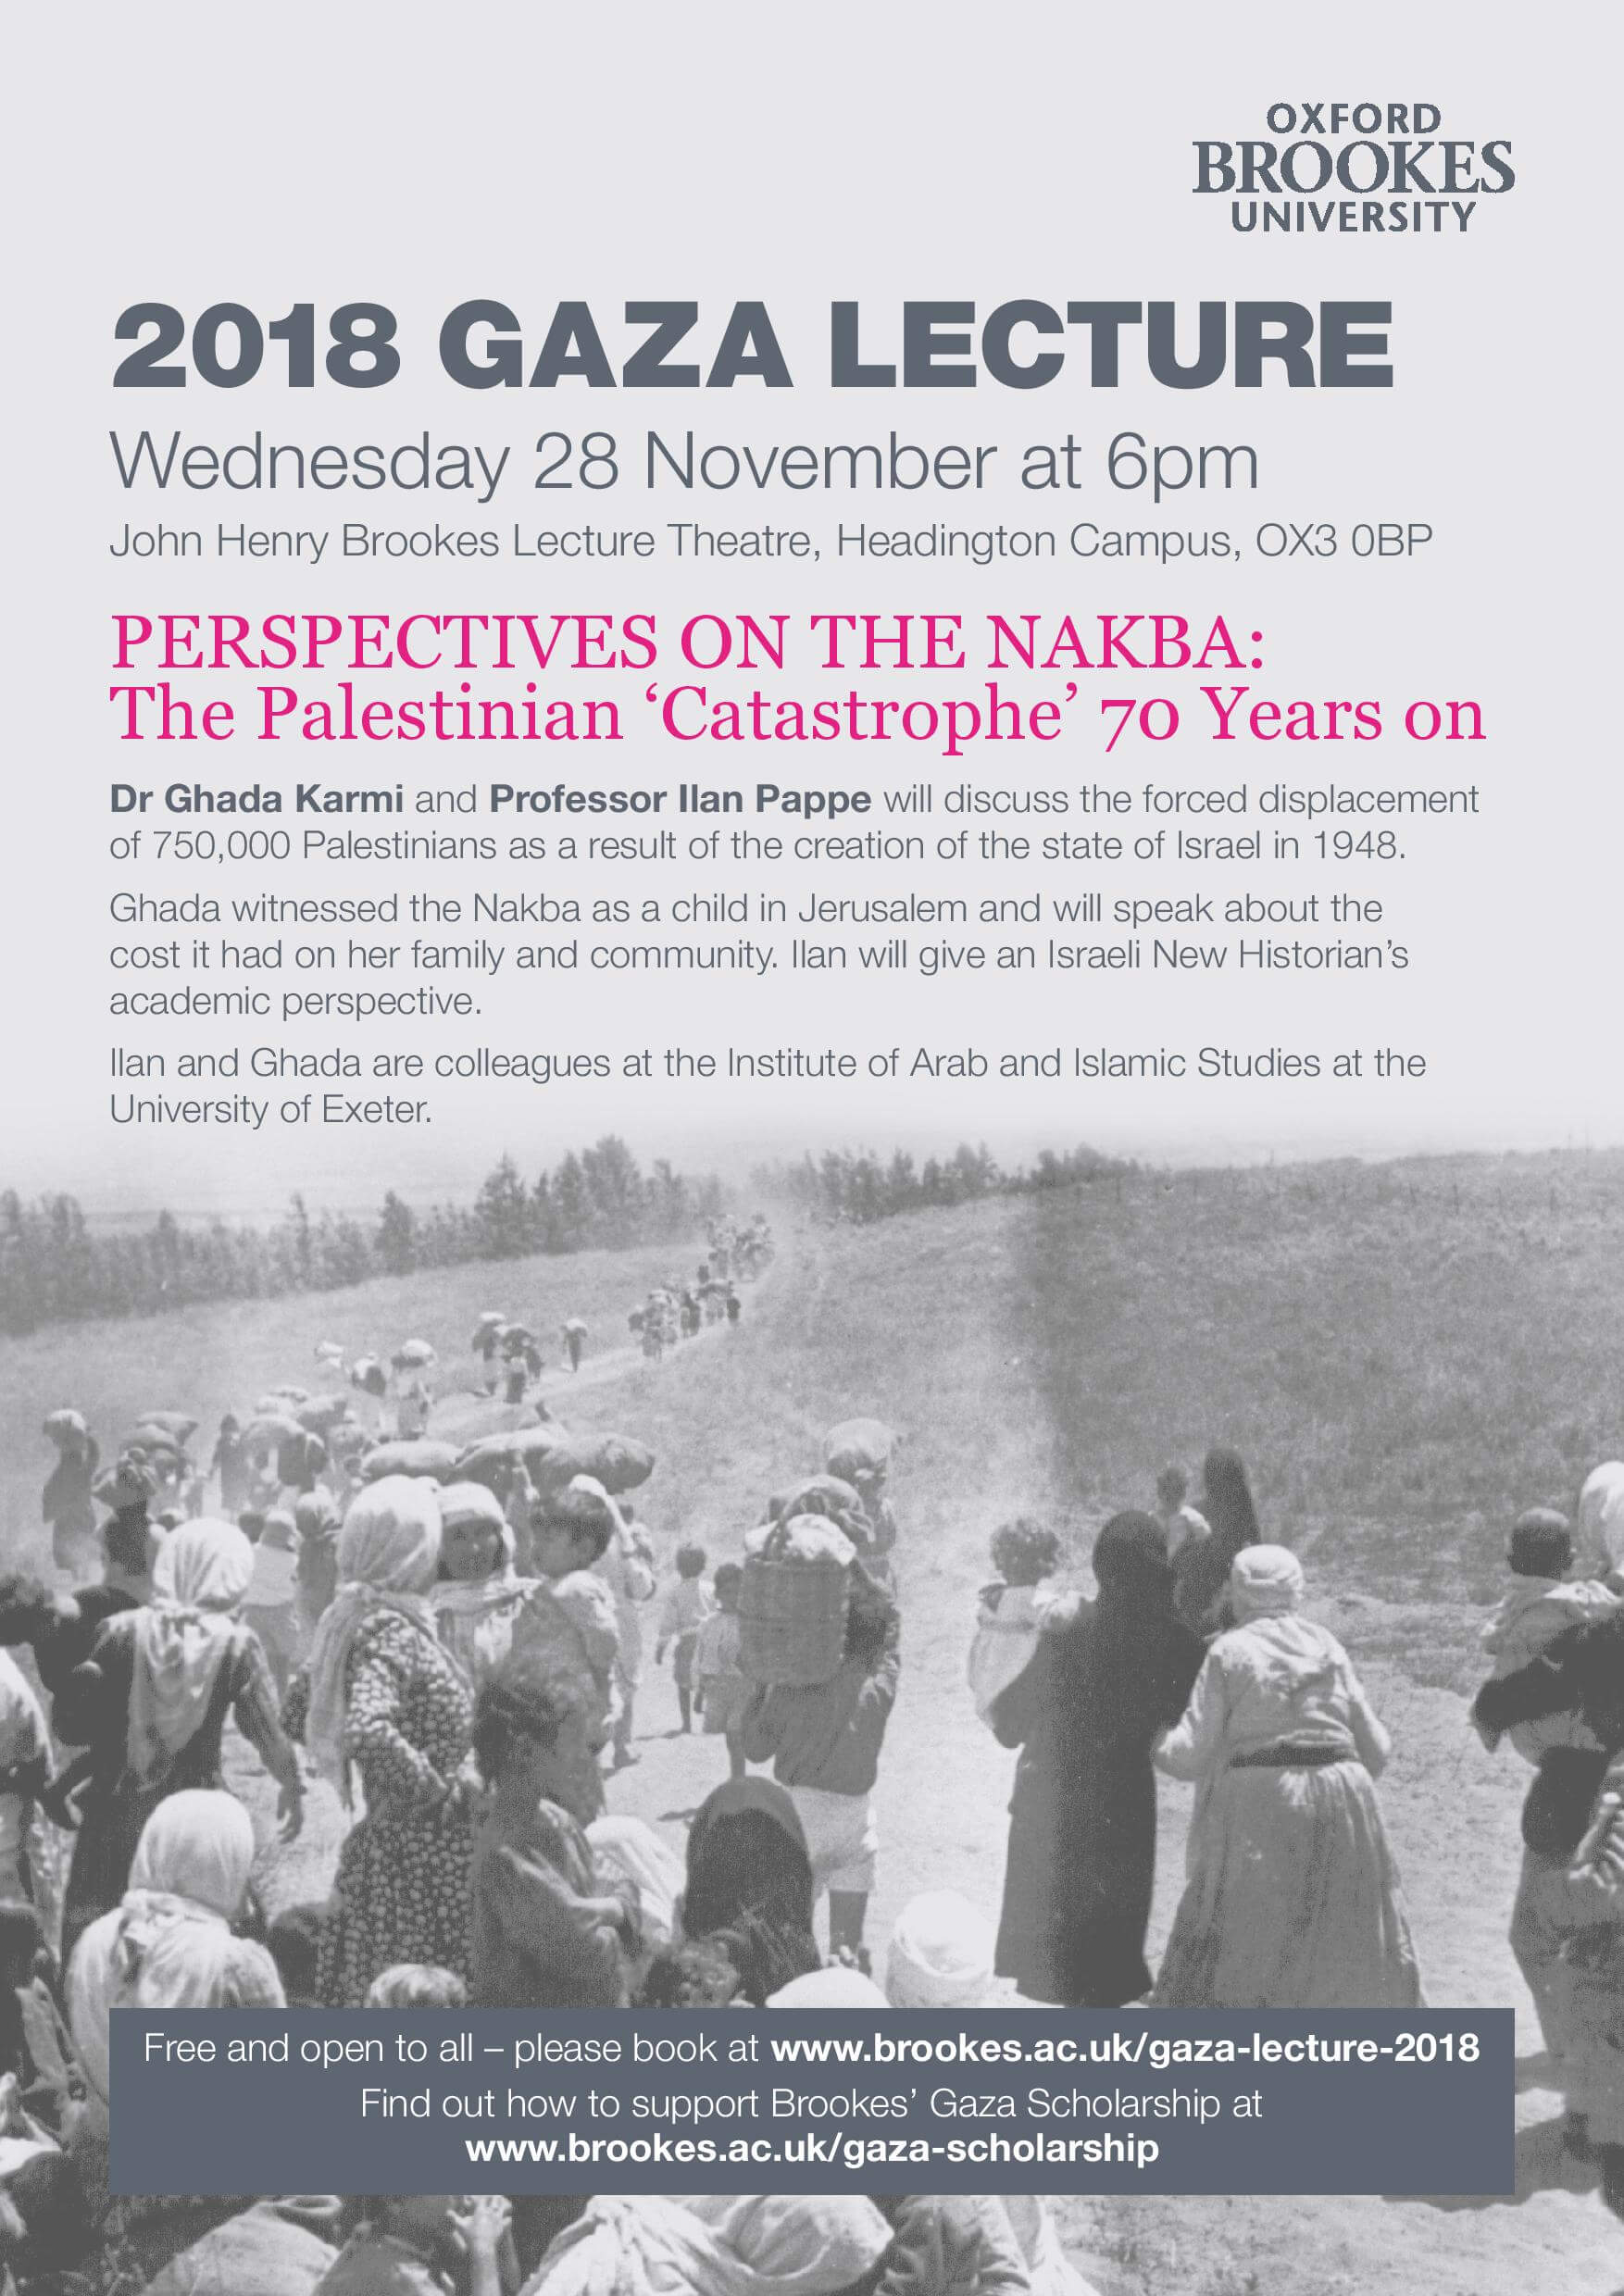 Lecture: Perspectives on the Nakba: The Palestinian 'Catastrophe' 70 Years on